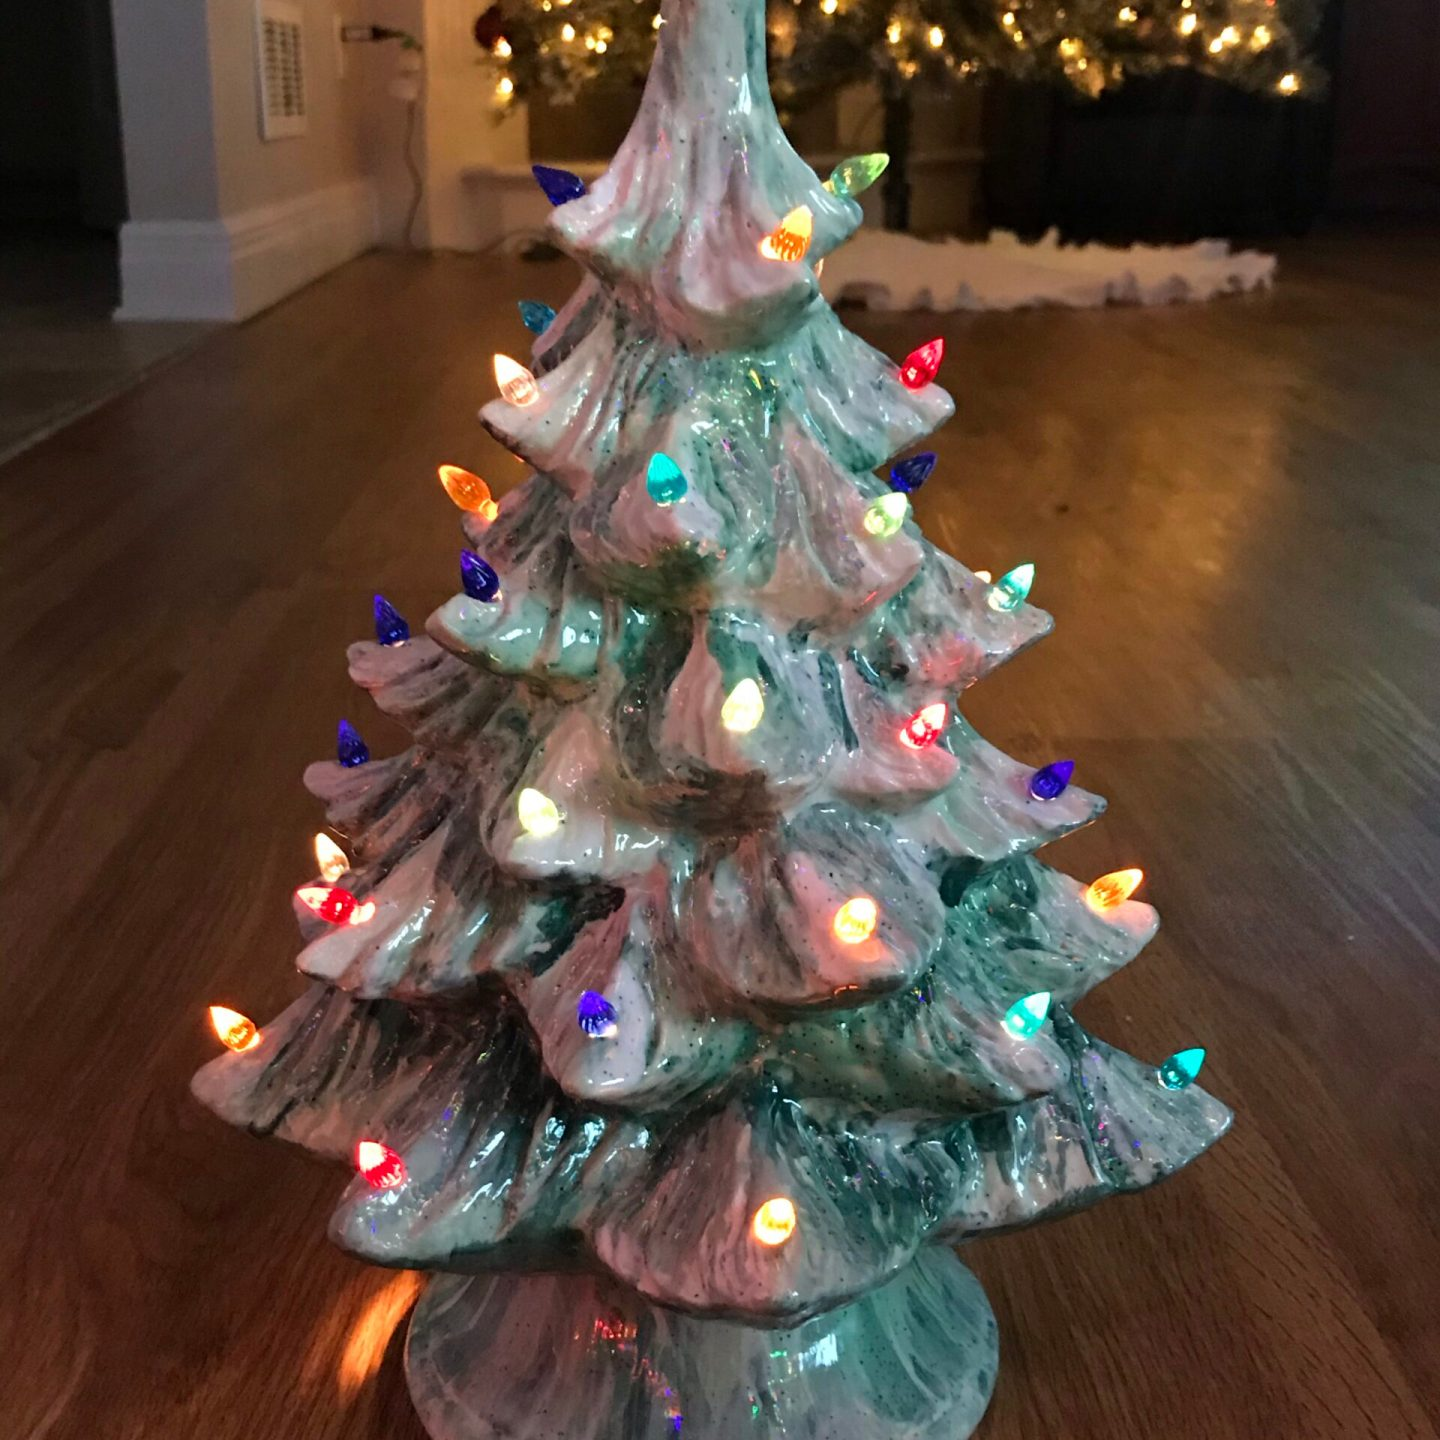 Ceramic Christmas Trees and Ornaments, DIY Style